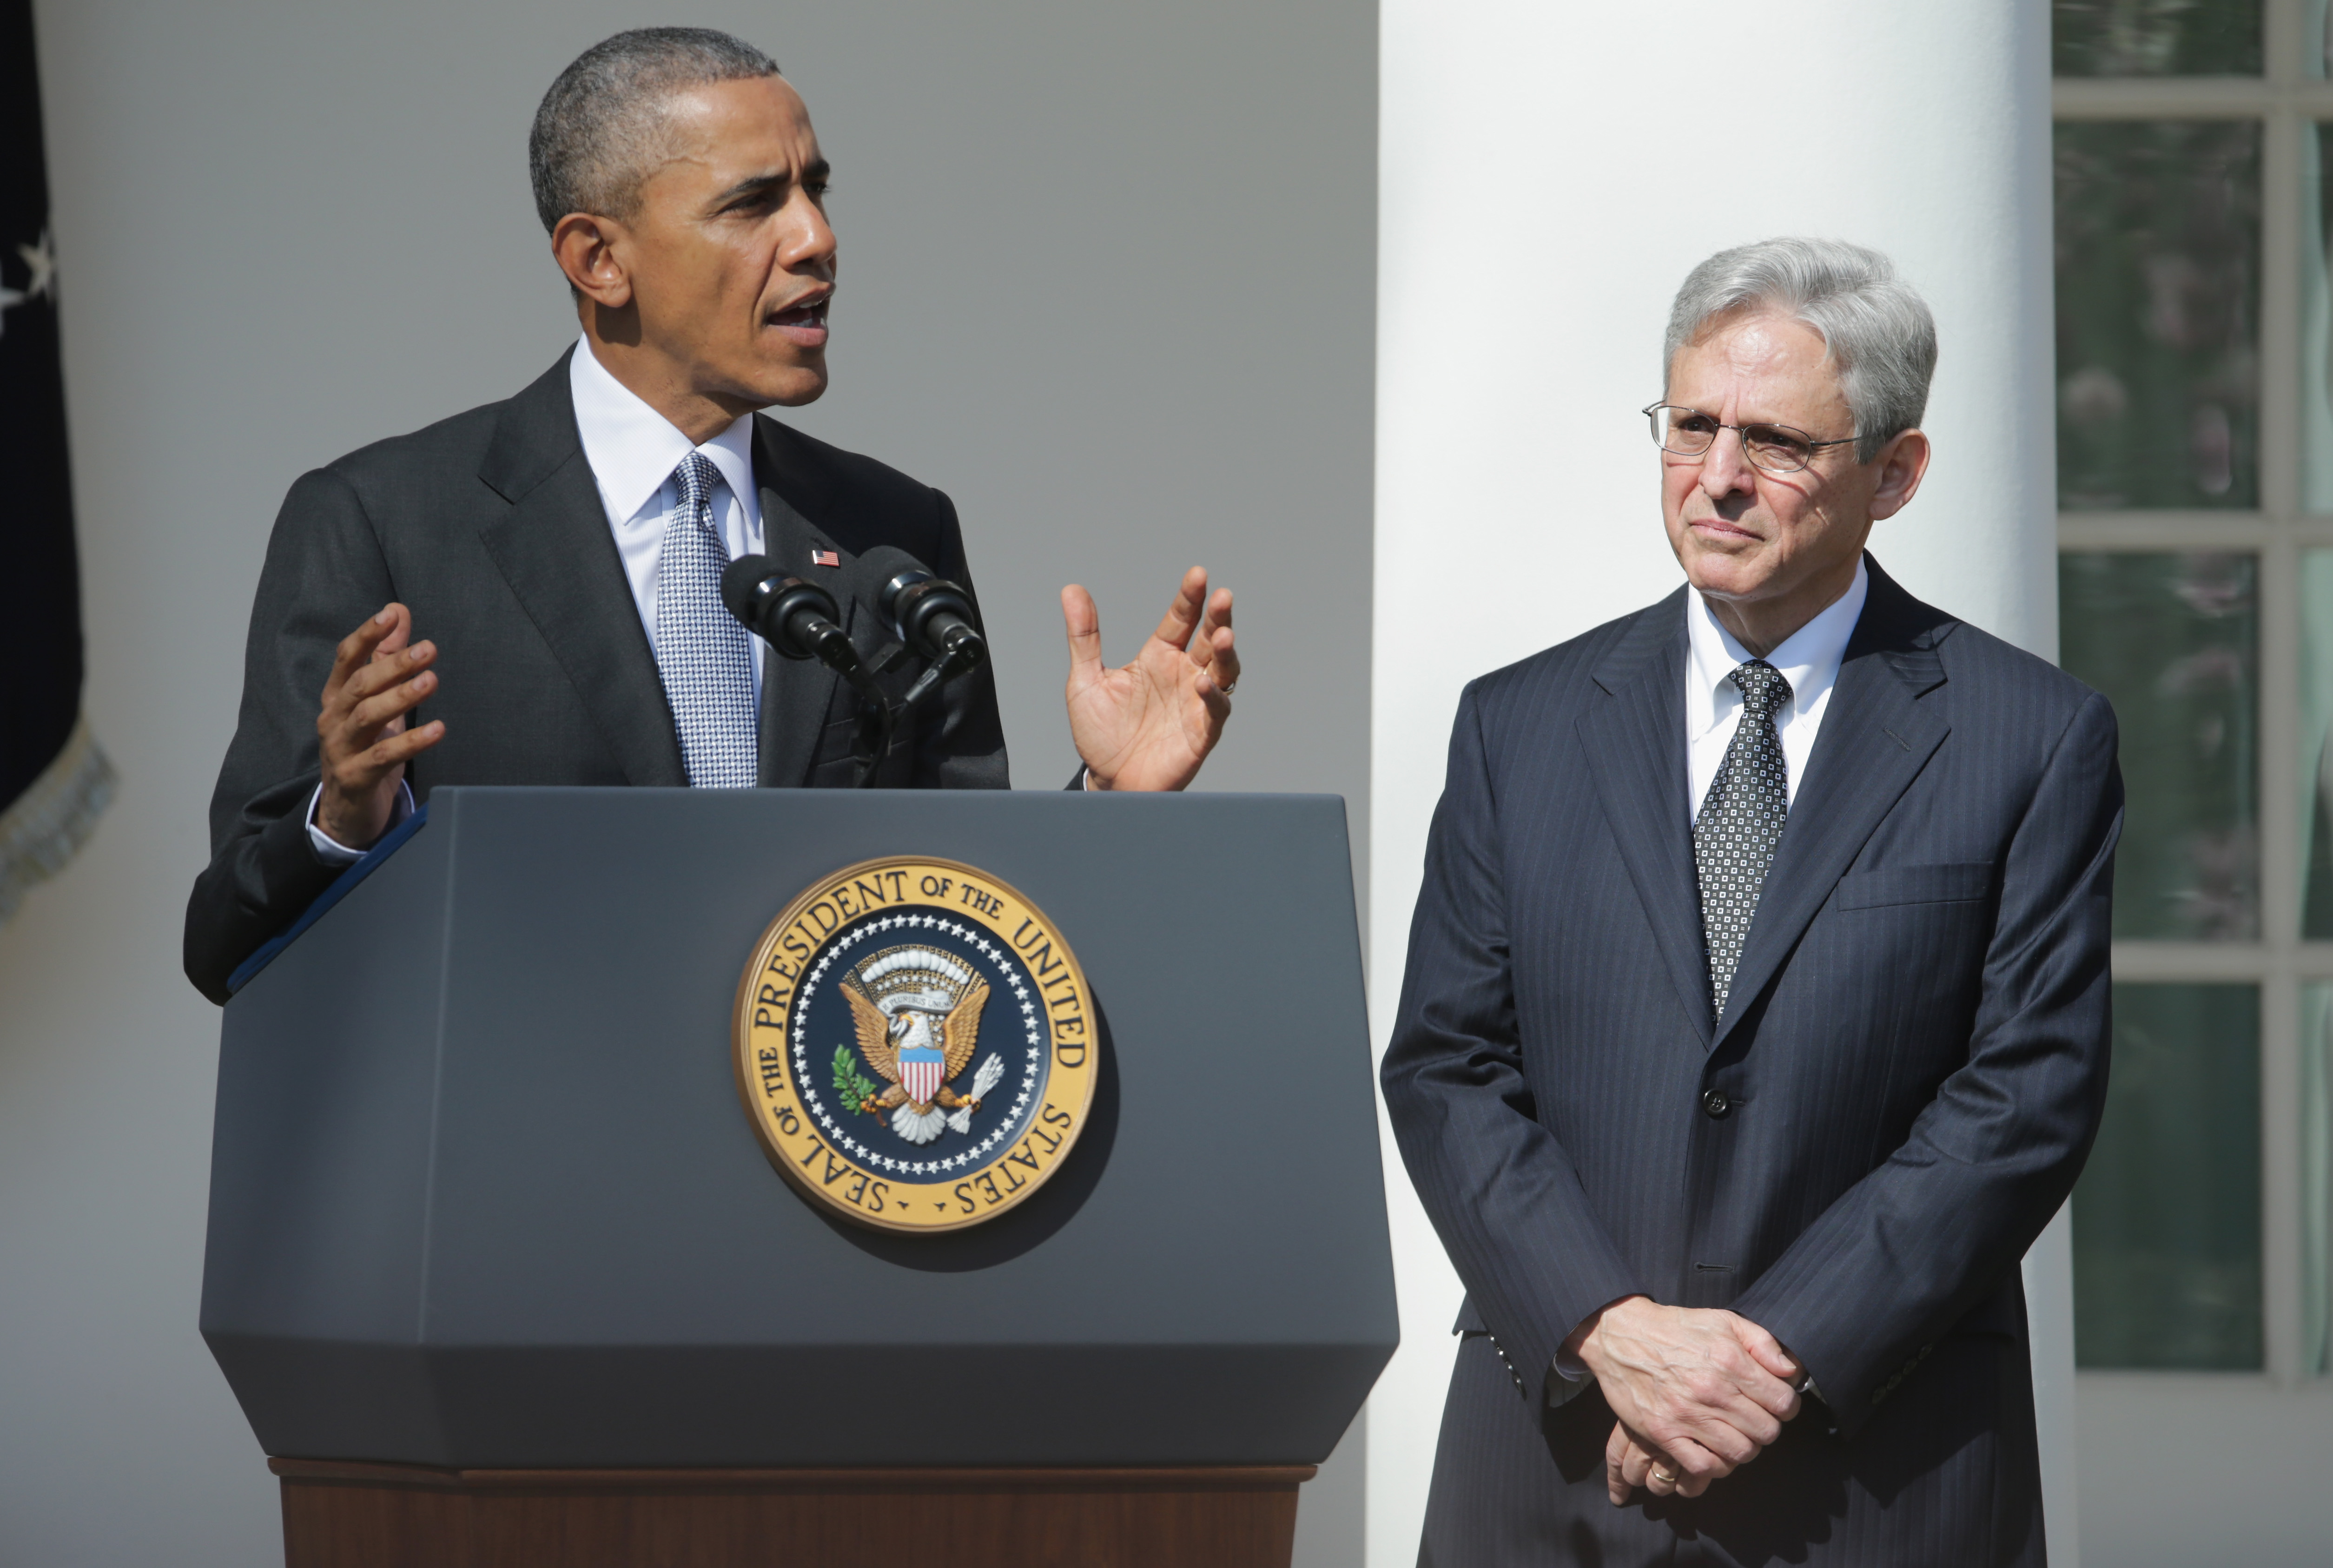 Former President Barack Obama stands with Judge Merrick B. Garland in the Rose Garden at the White House while nominating him to the Supreme Court on March 16, 2016. (Chip Somodevilla/Getty Images)